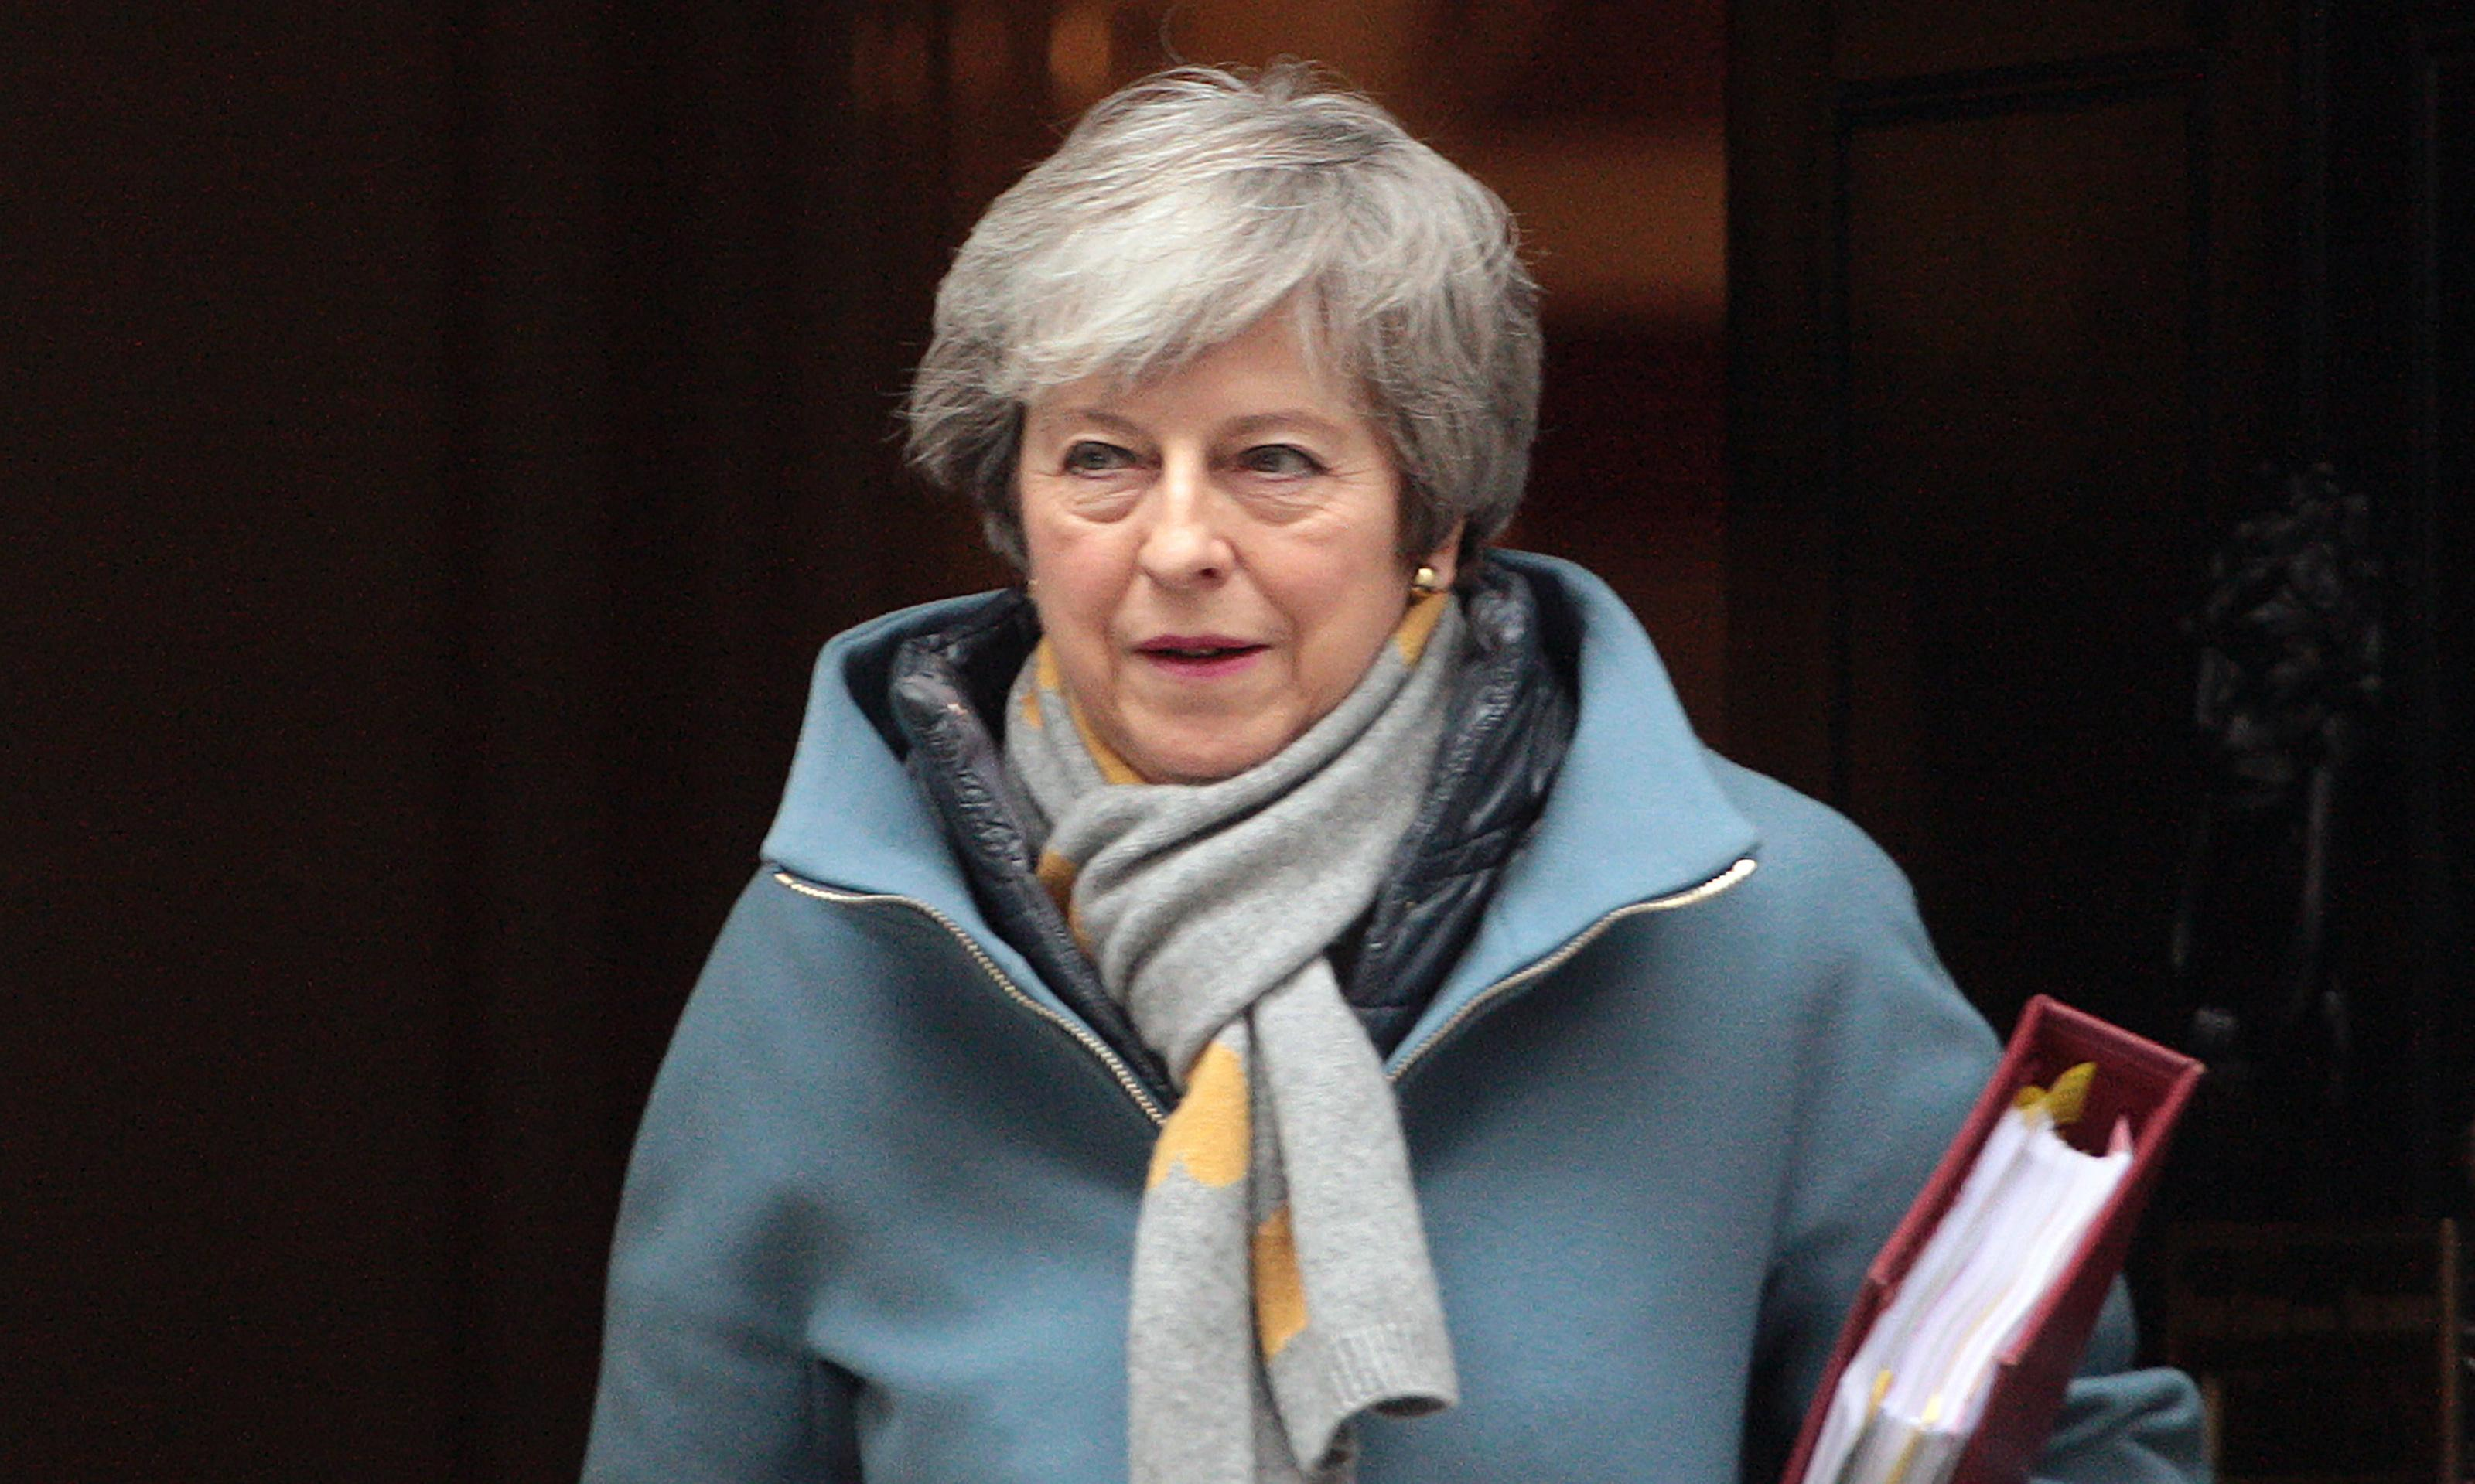 May will scrap third vote on Brexit deal unless it has 'realistic' chance